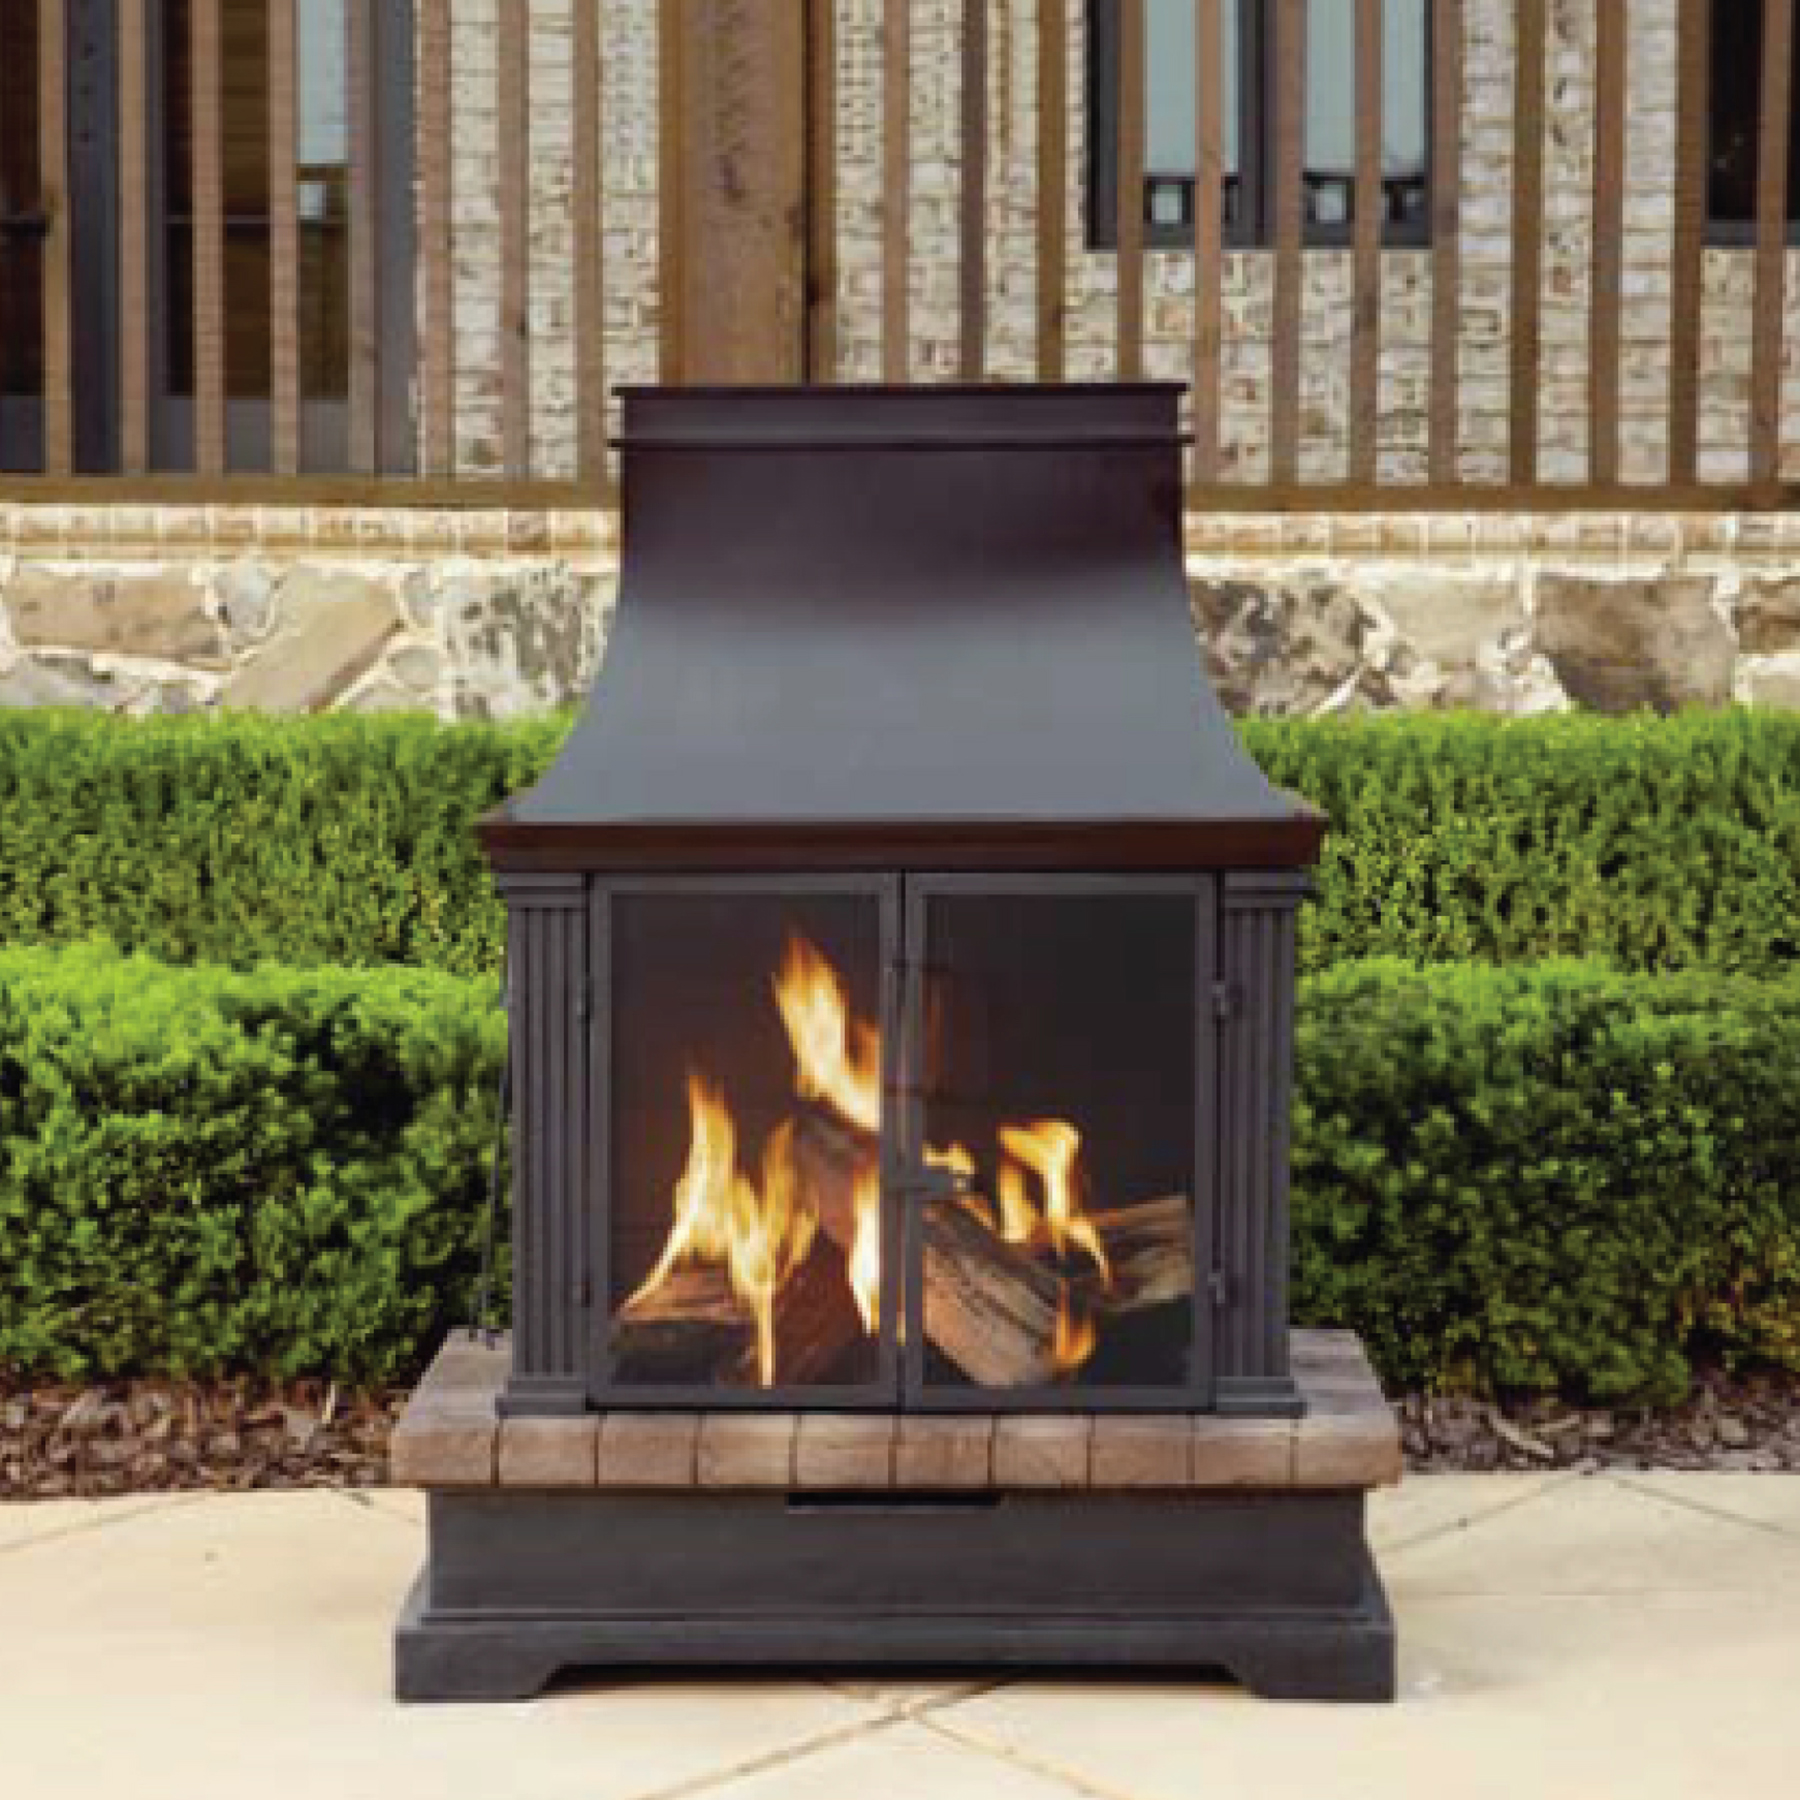 Garden Oasis Wood Burning Fireplace